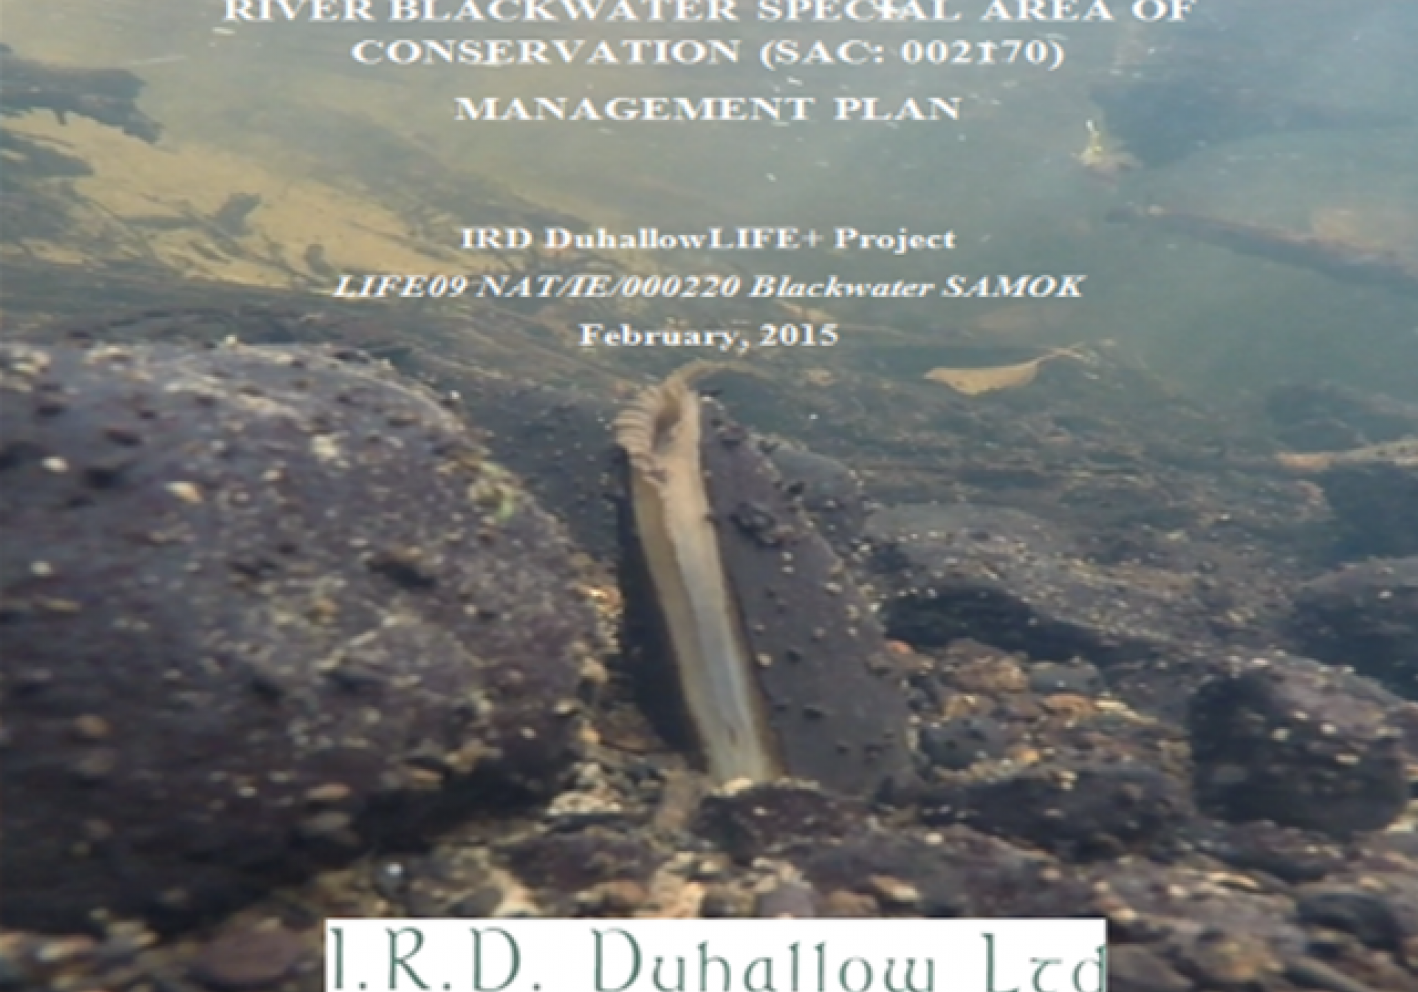 Conservation Plan for the upper River Blackwater SAC